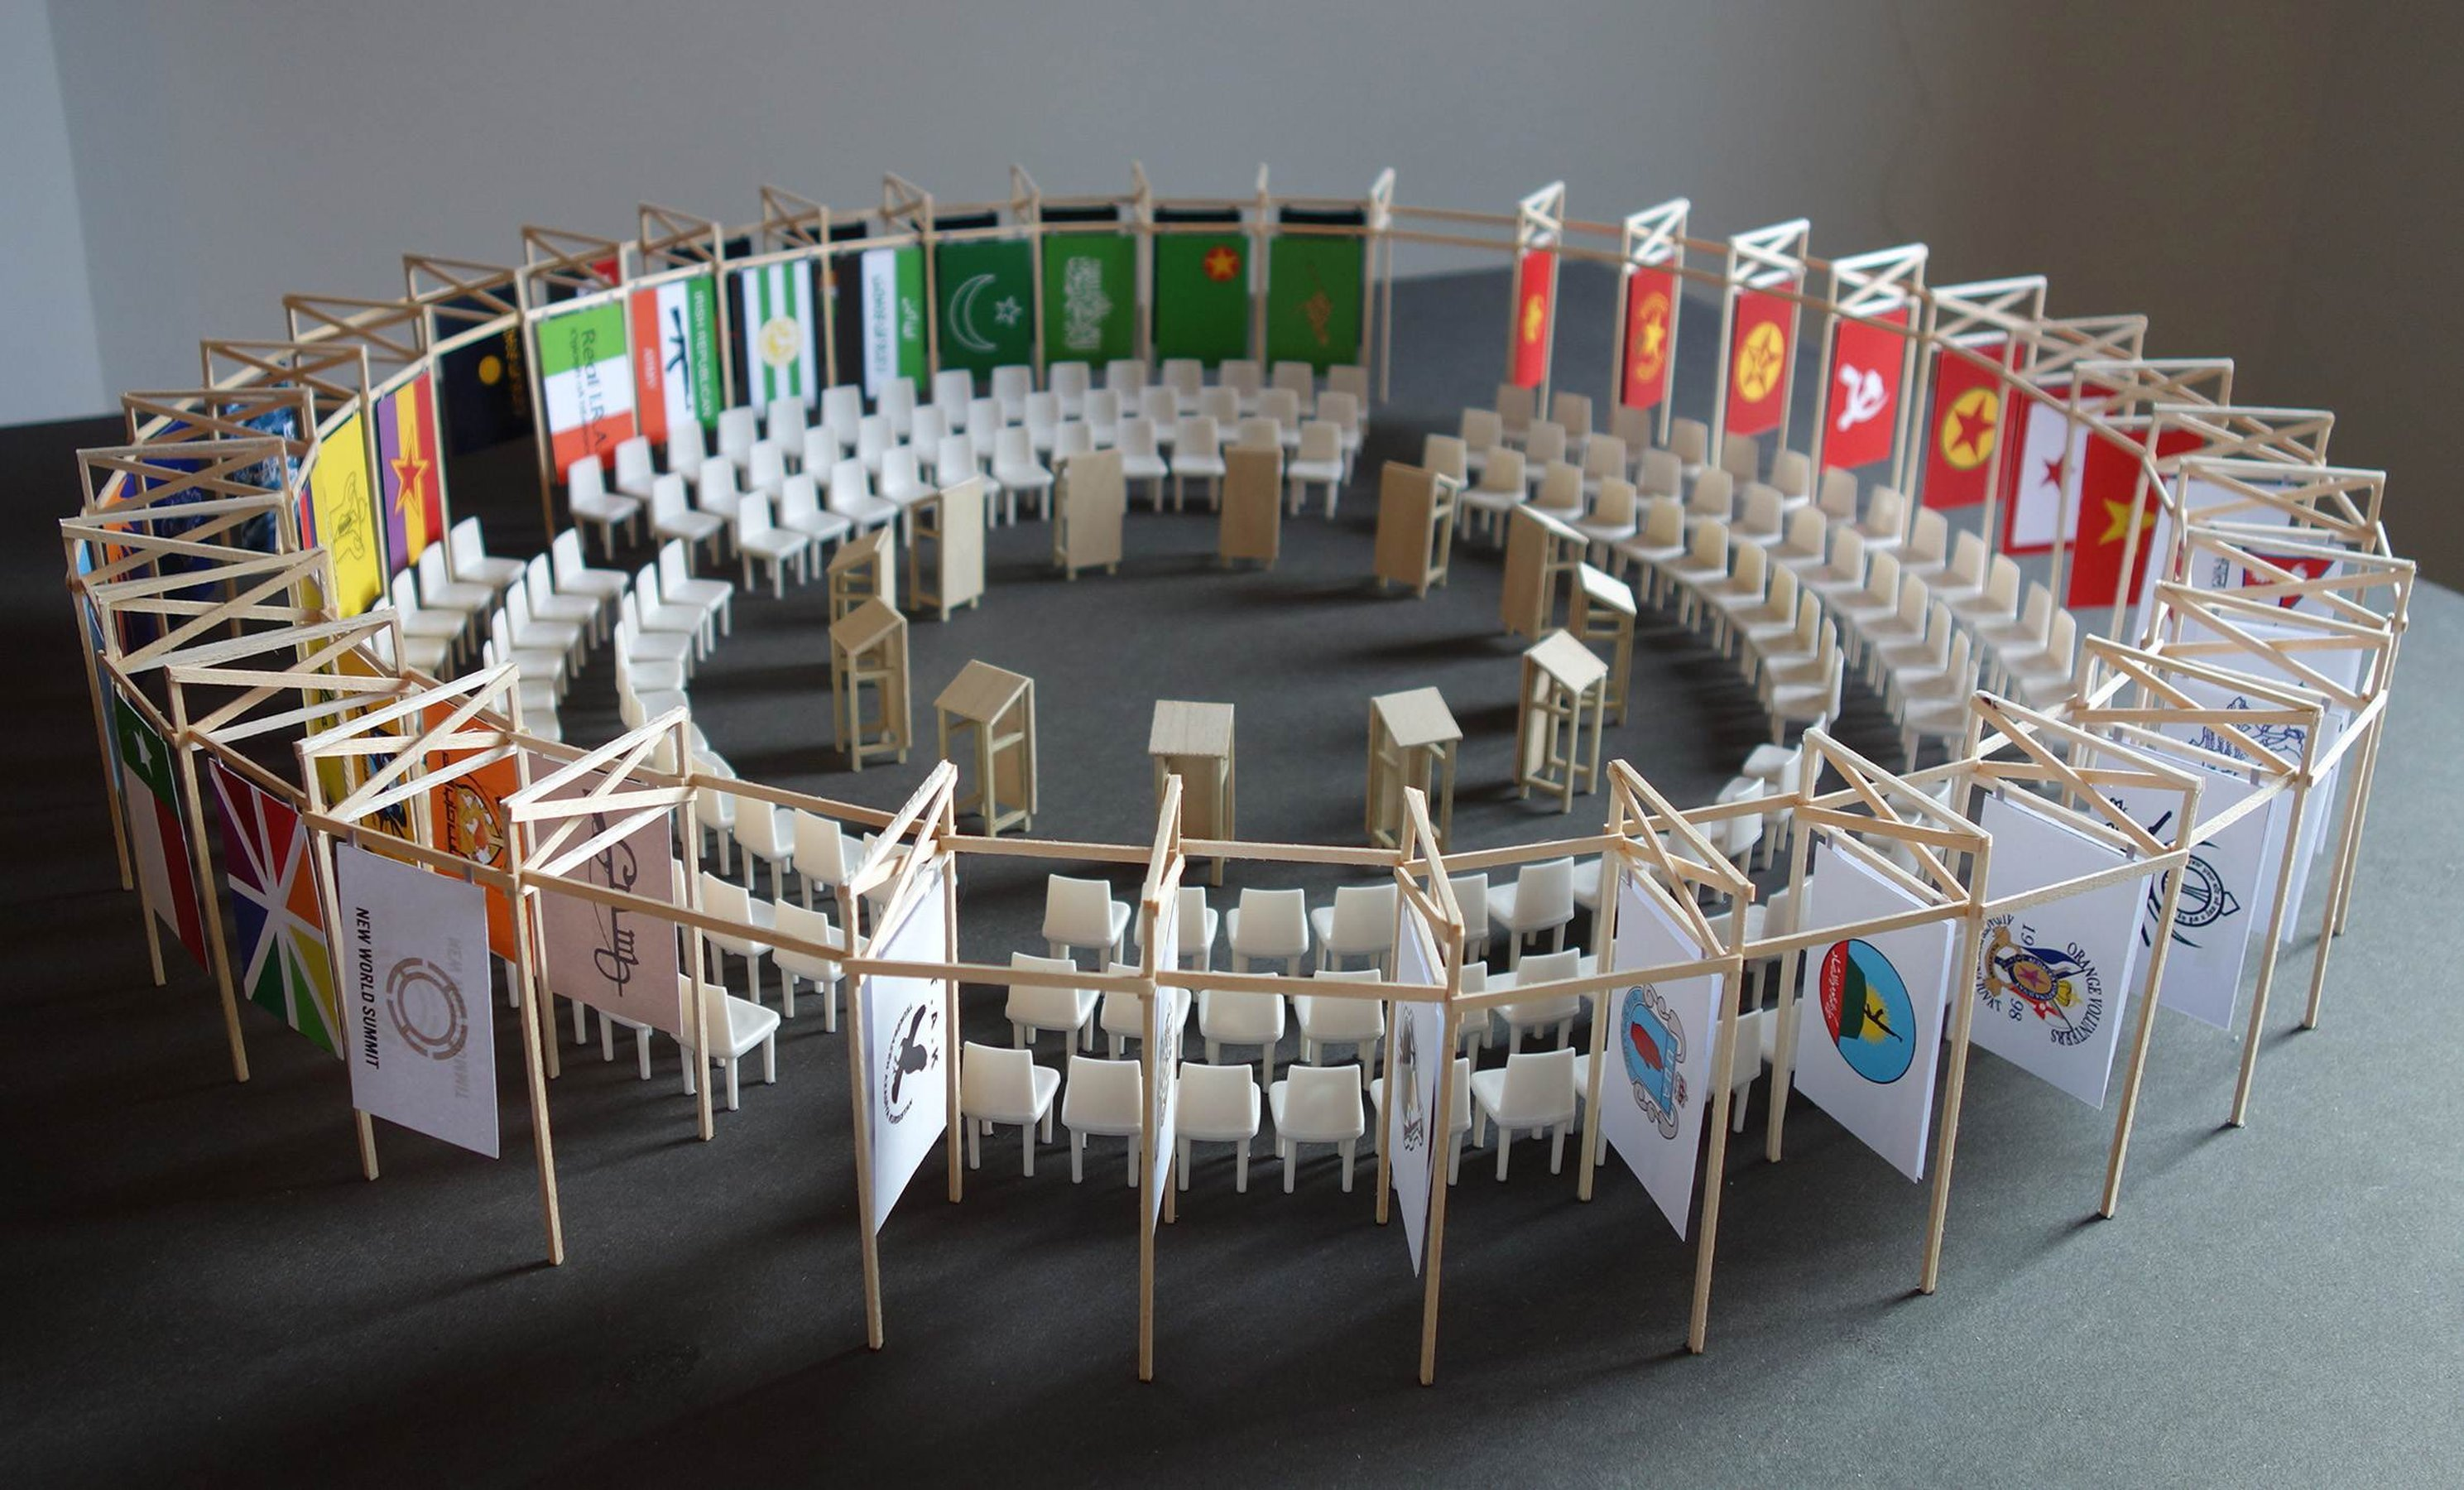 New World Summit \u002D Berlin (architectural model)